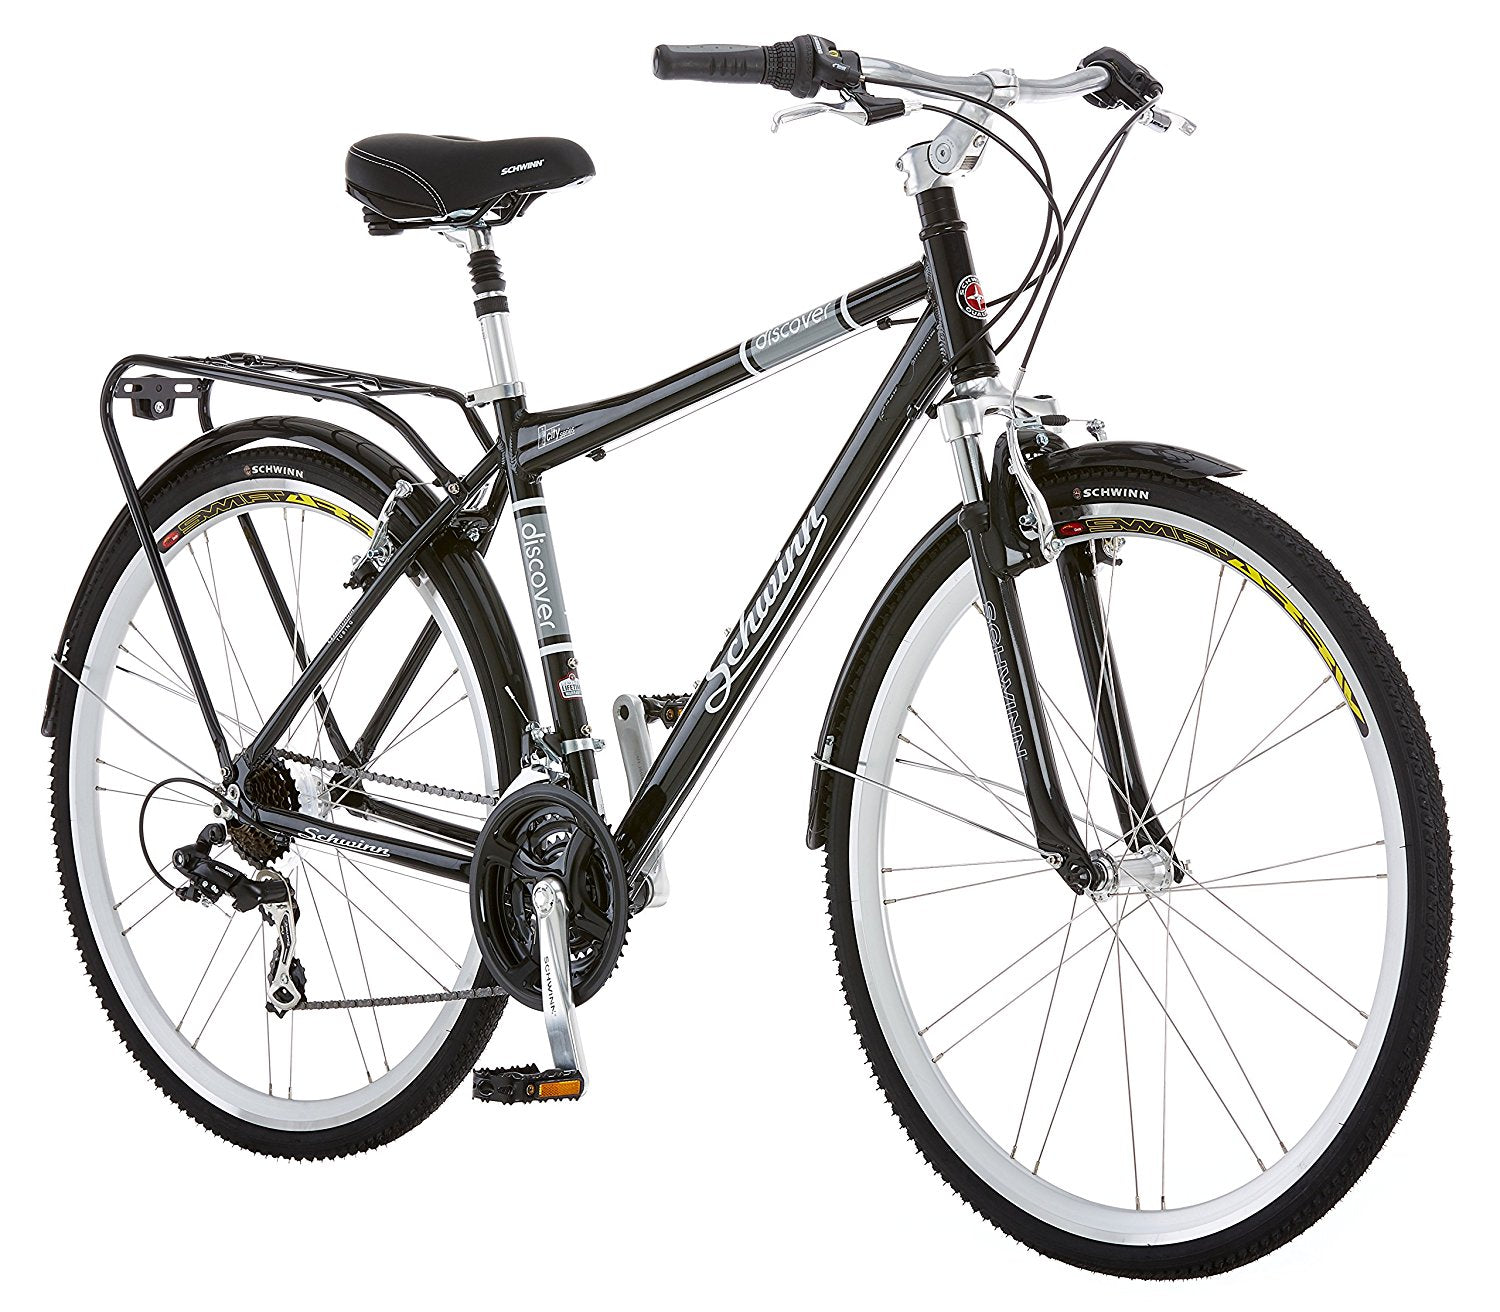 Best Commuter Bike Buying Guide Other Tips To Enjoy Commuting To